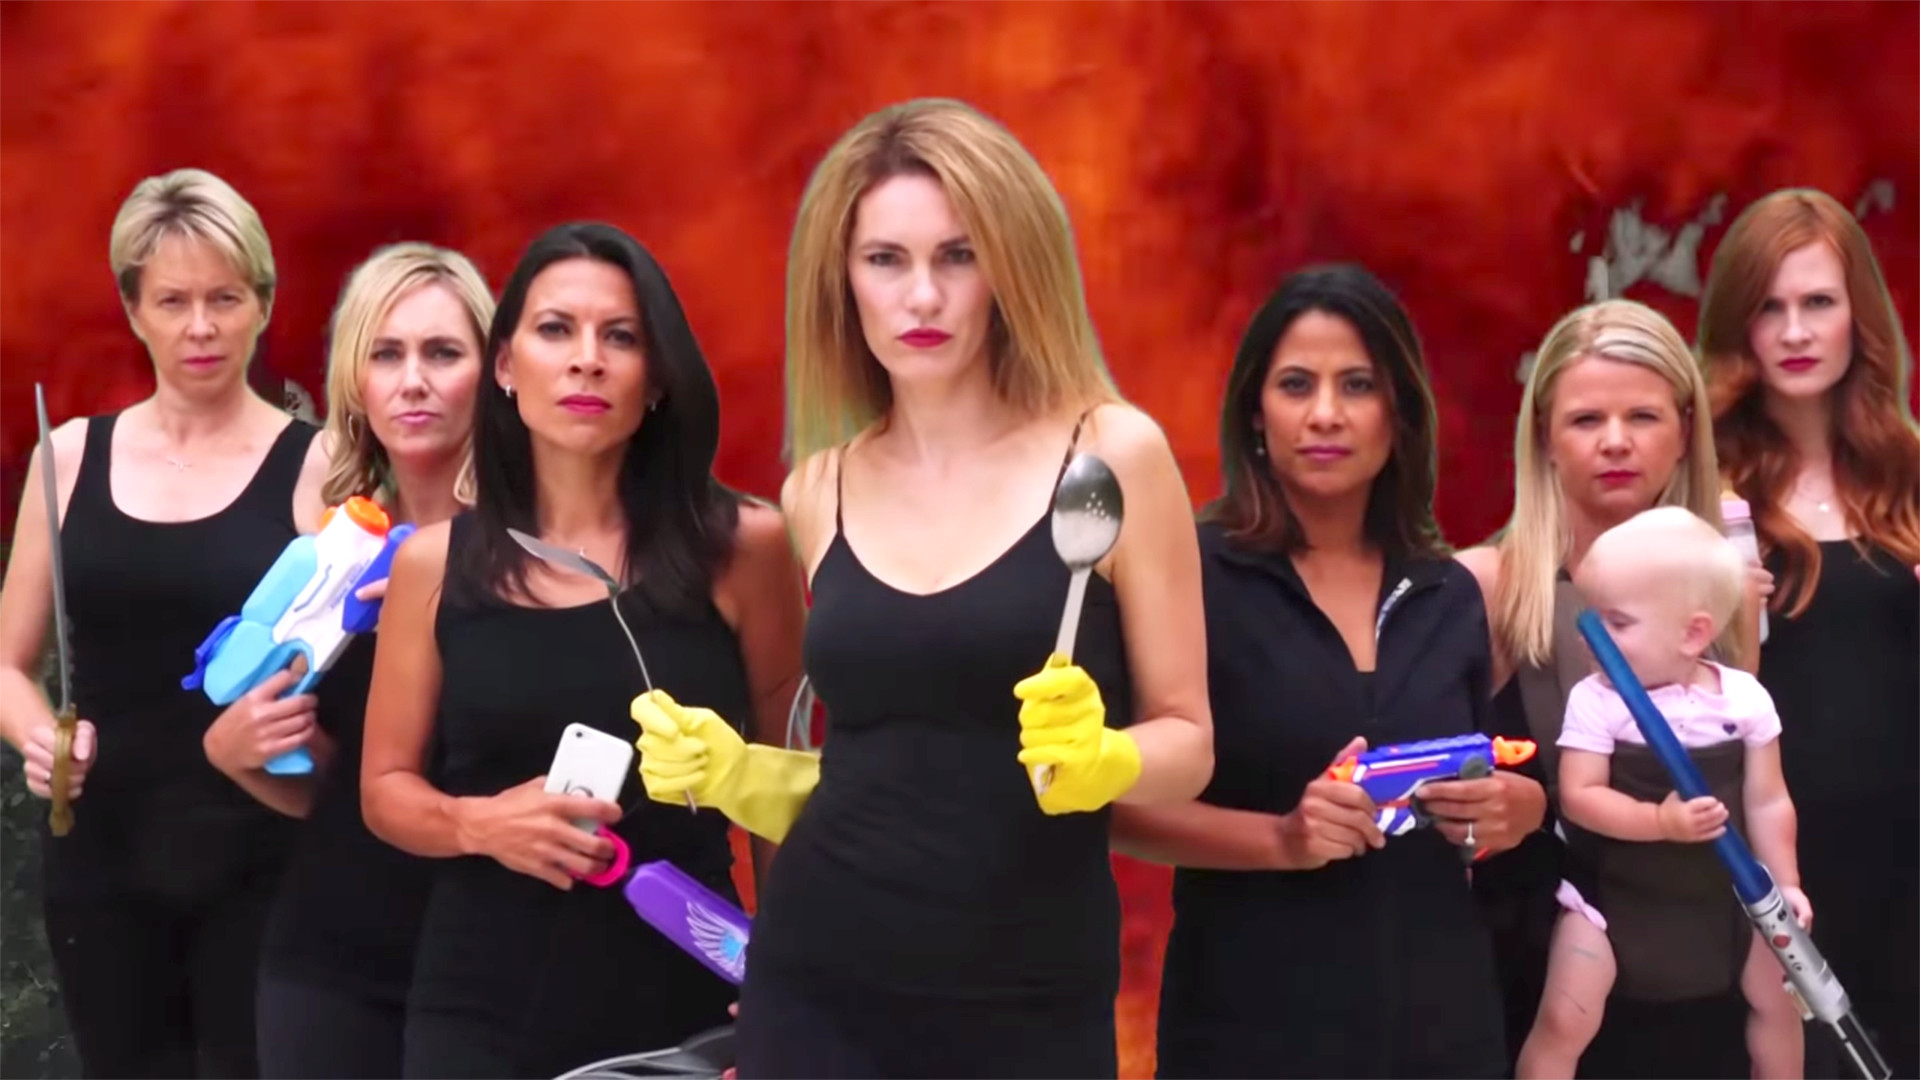 Res: 1920x1080, Bad Moms Wallpapers 24 - 1920 X 1080